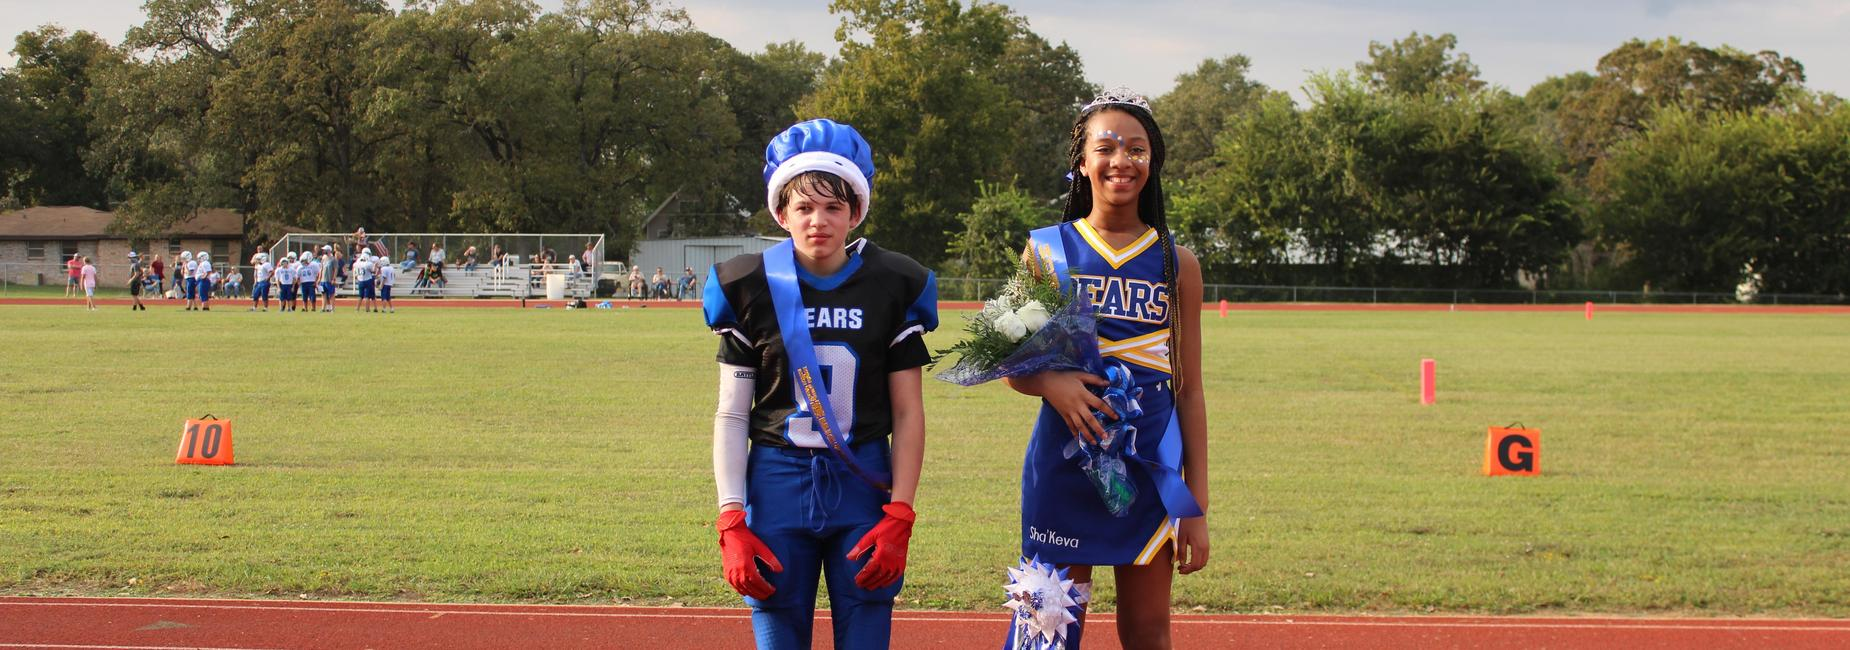 Hoco King and Queen 2020